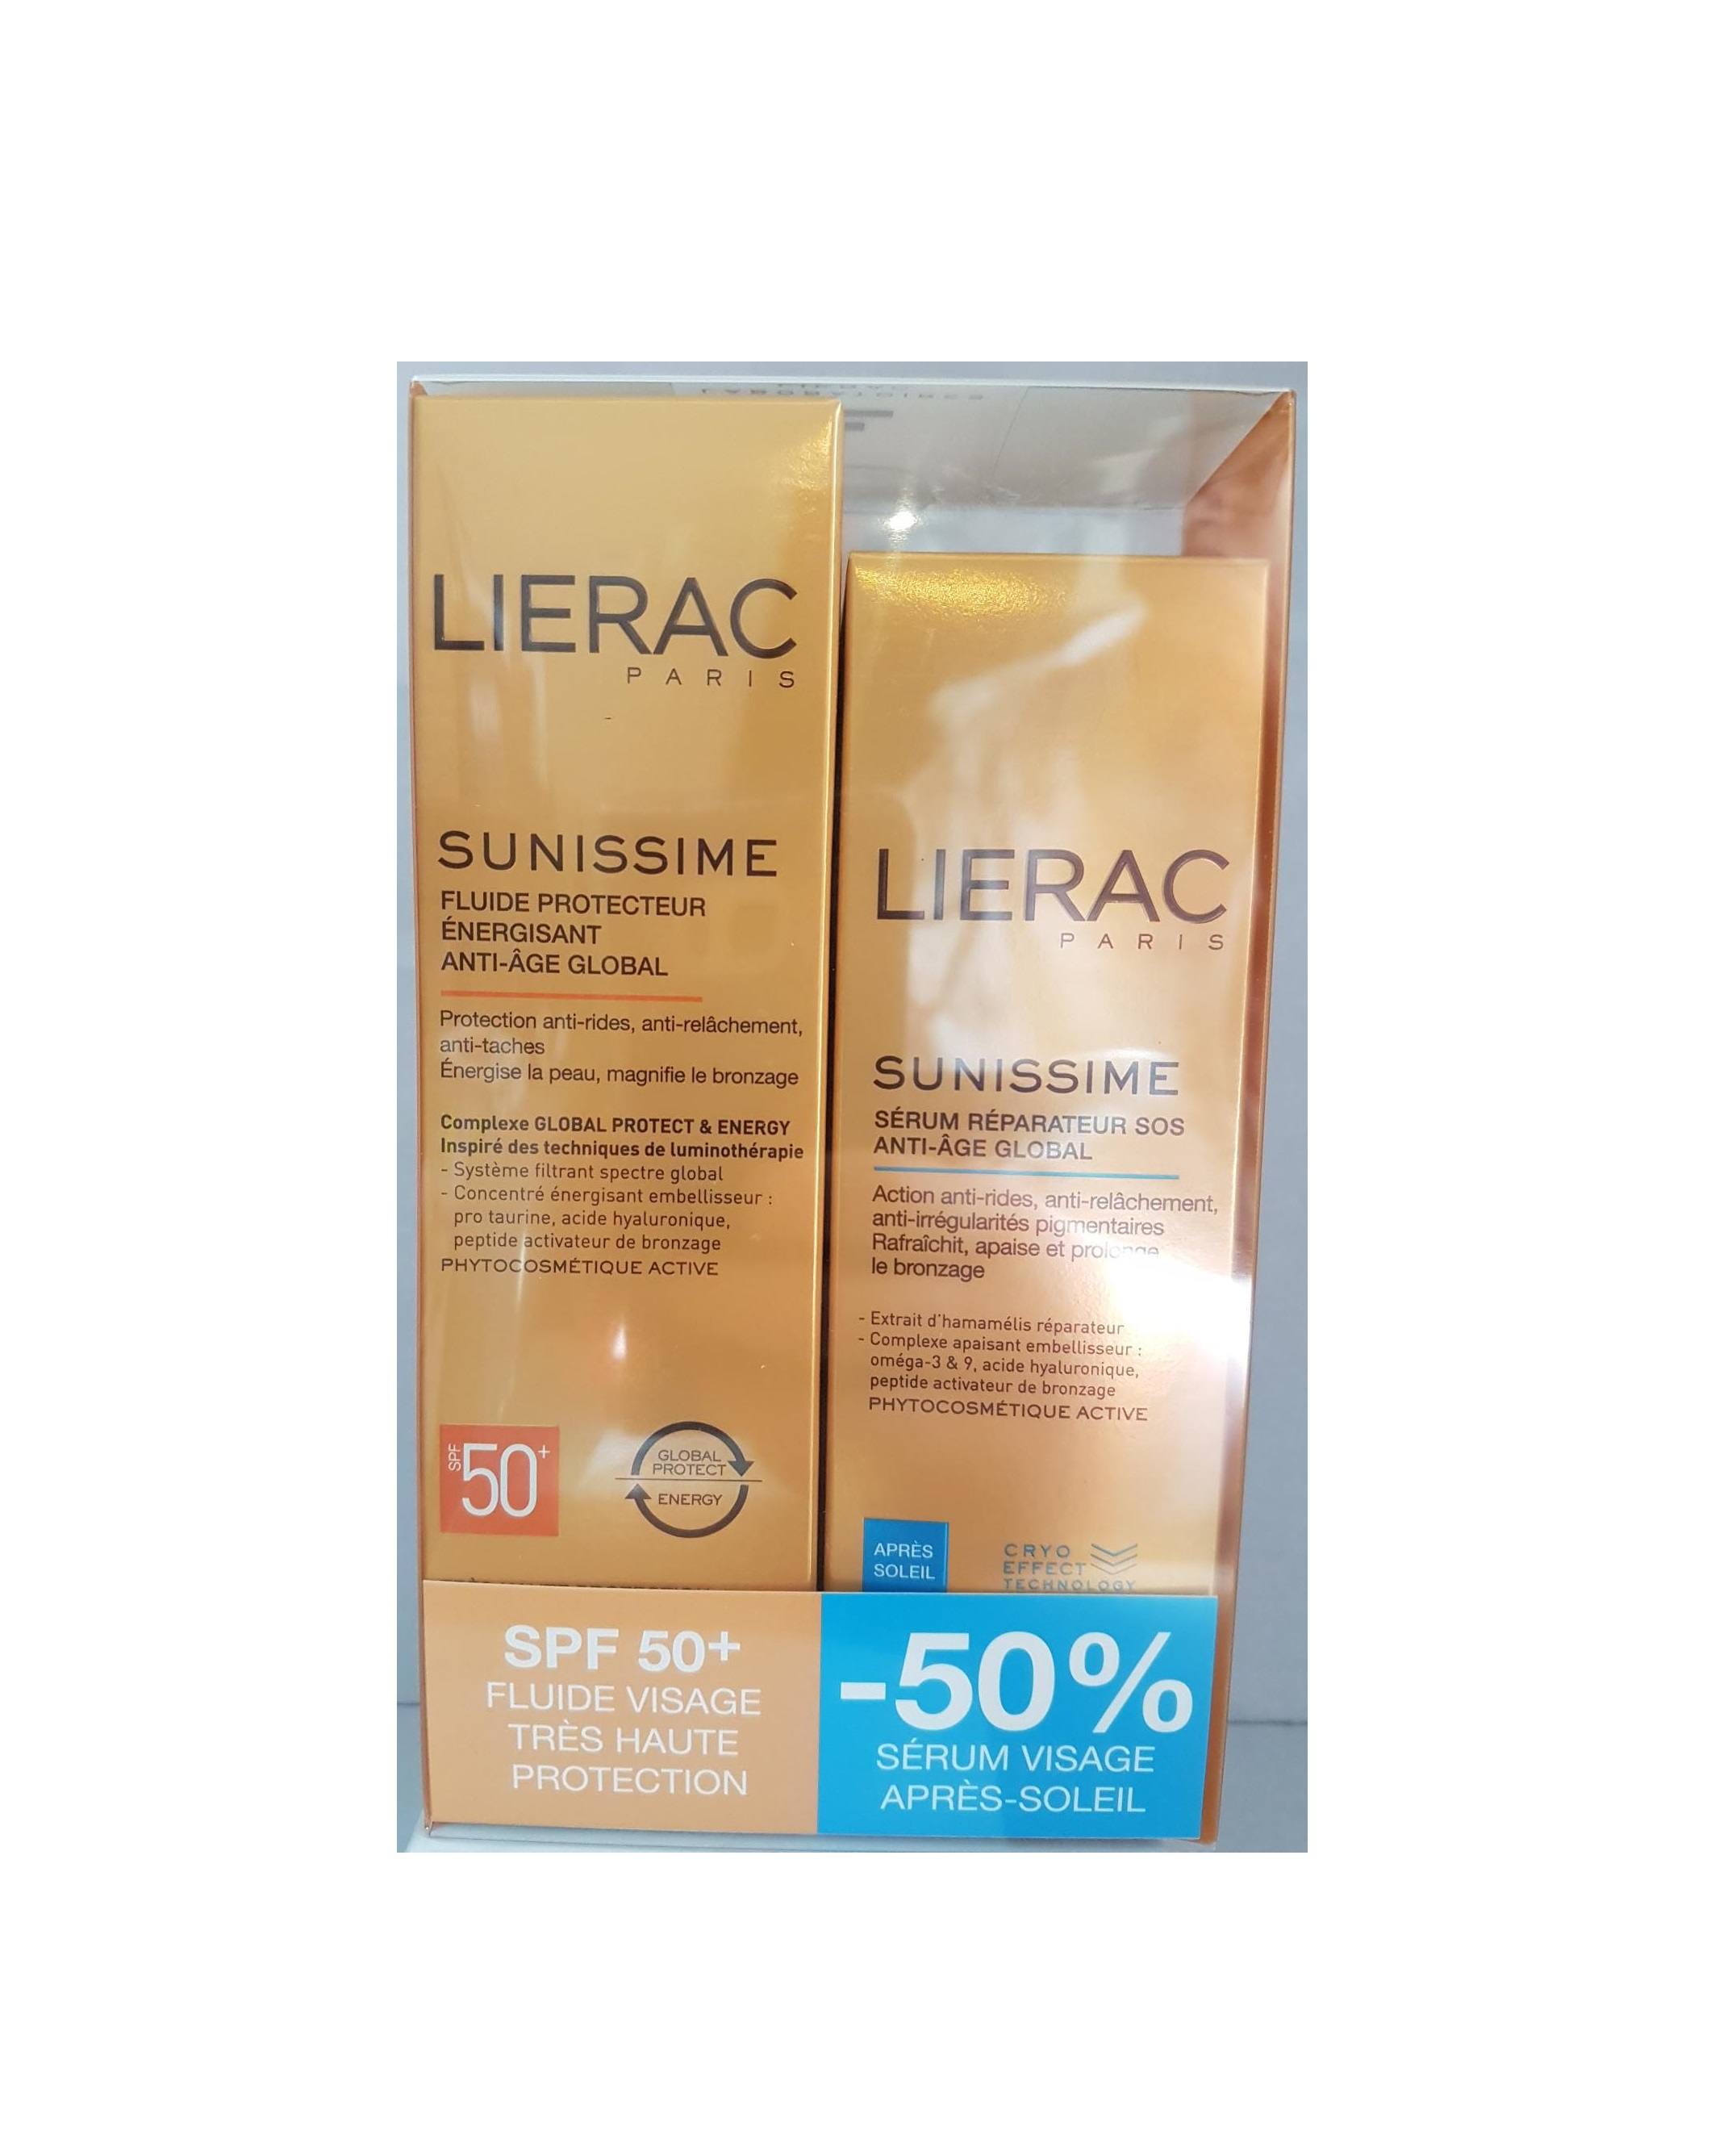 lierac-sunissime-creme-after-sun.jpg